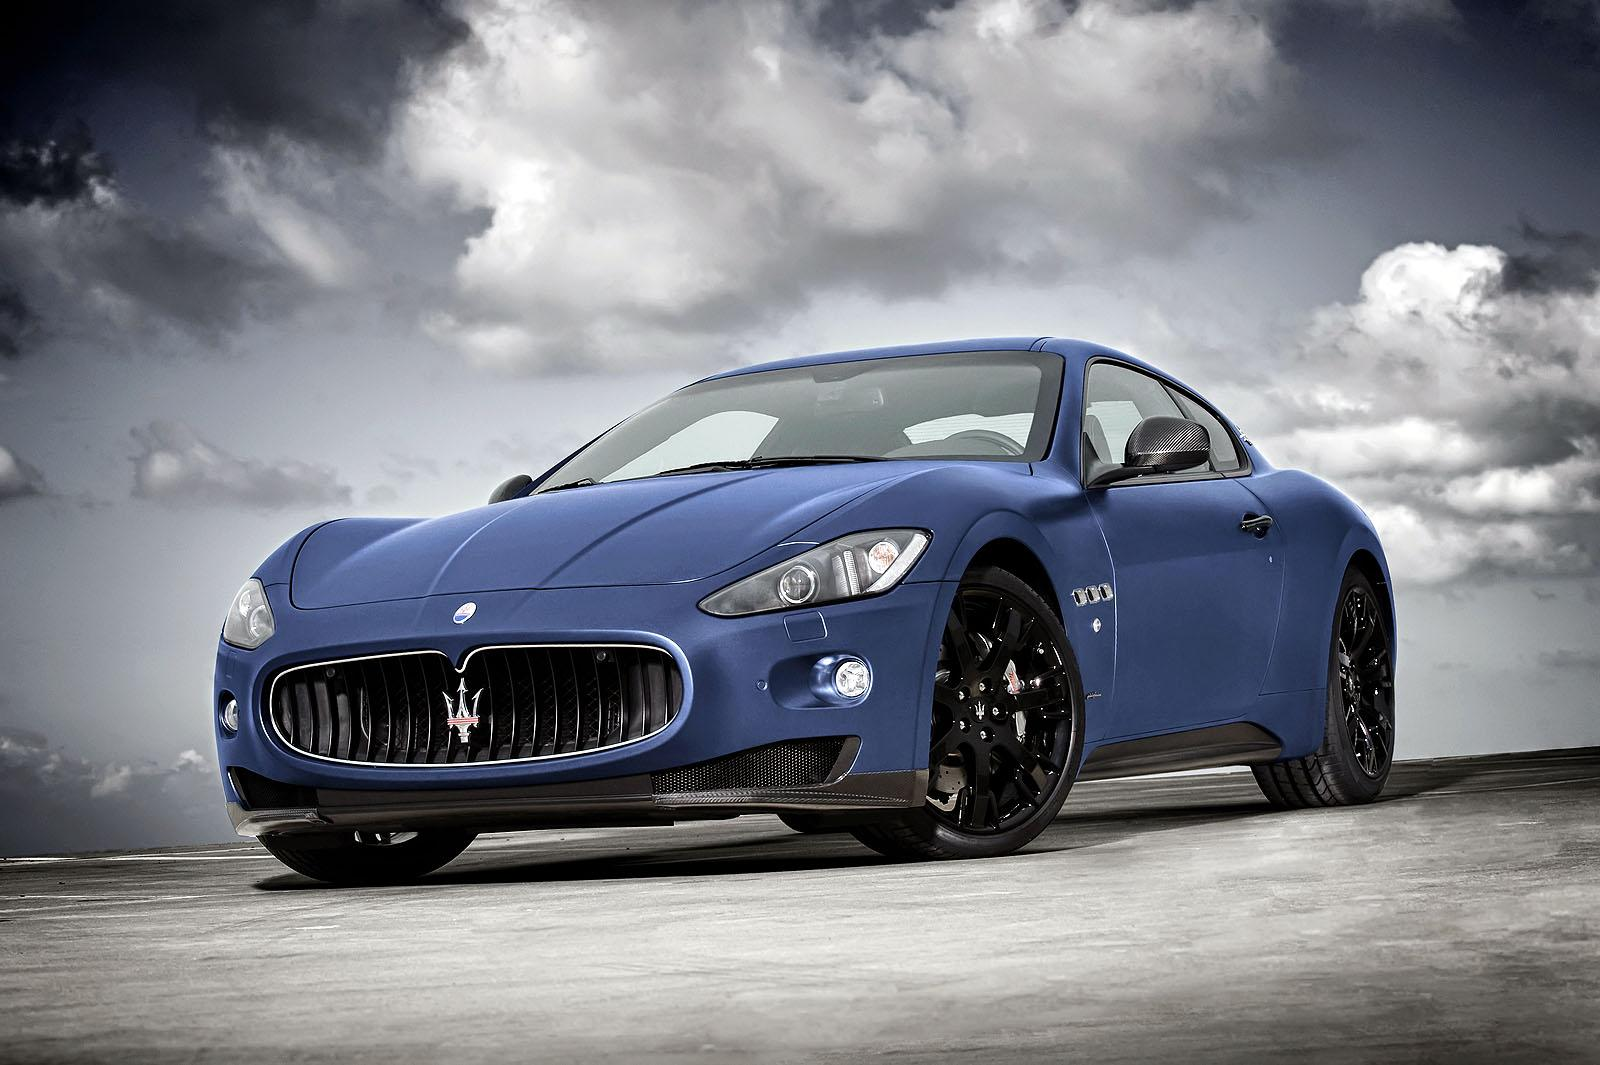 2012 maserati granturismo s limited edition a technical review. Black Bedroom Furniture Sets. Home Design Ideas